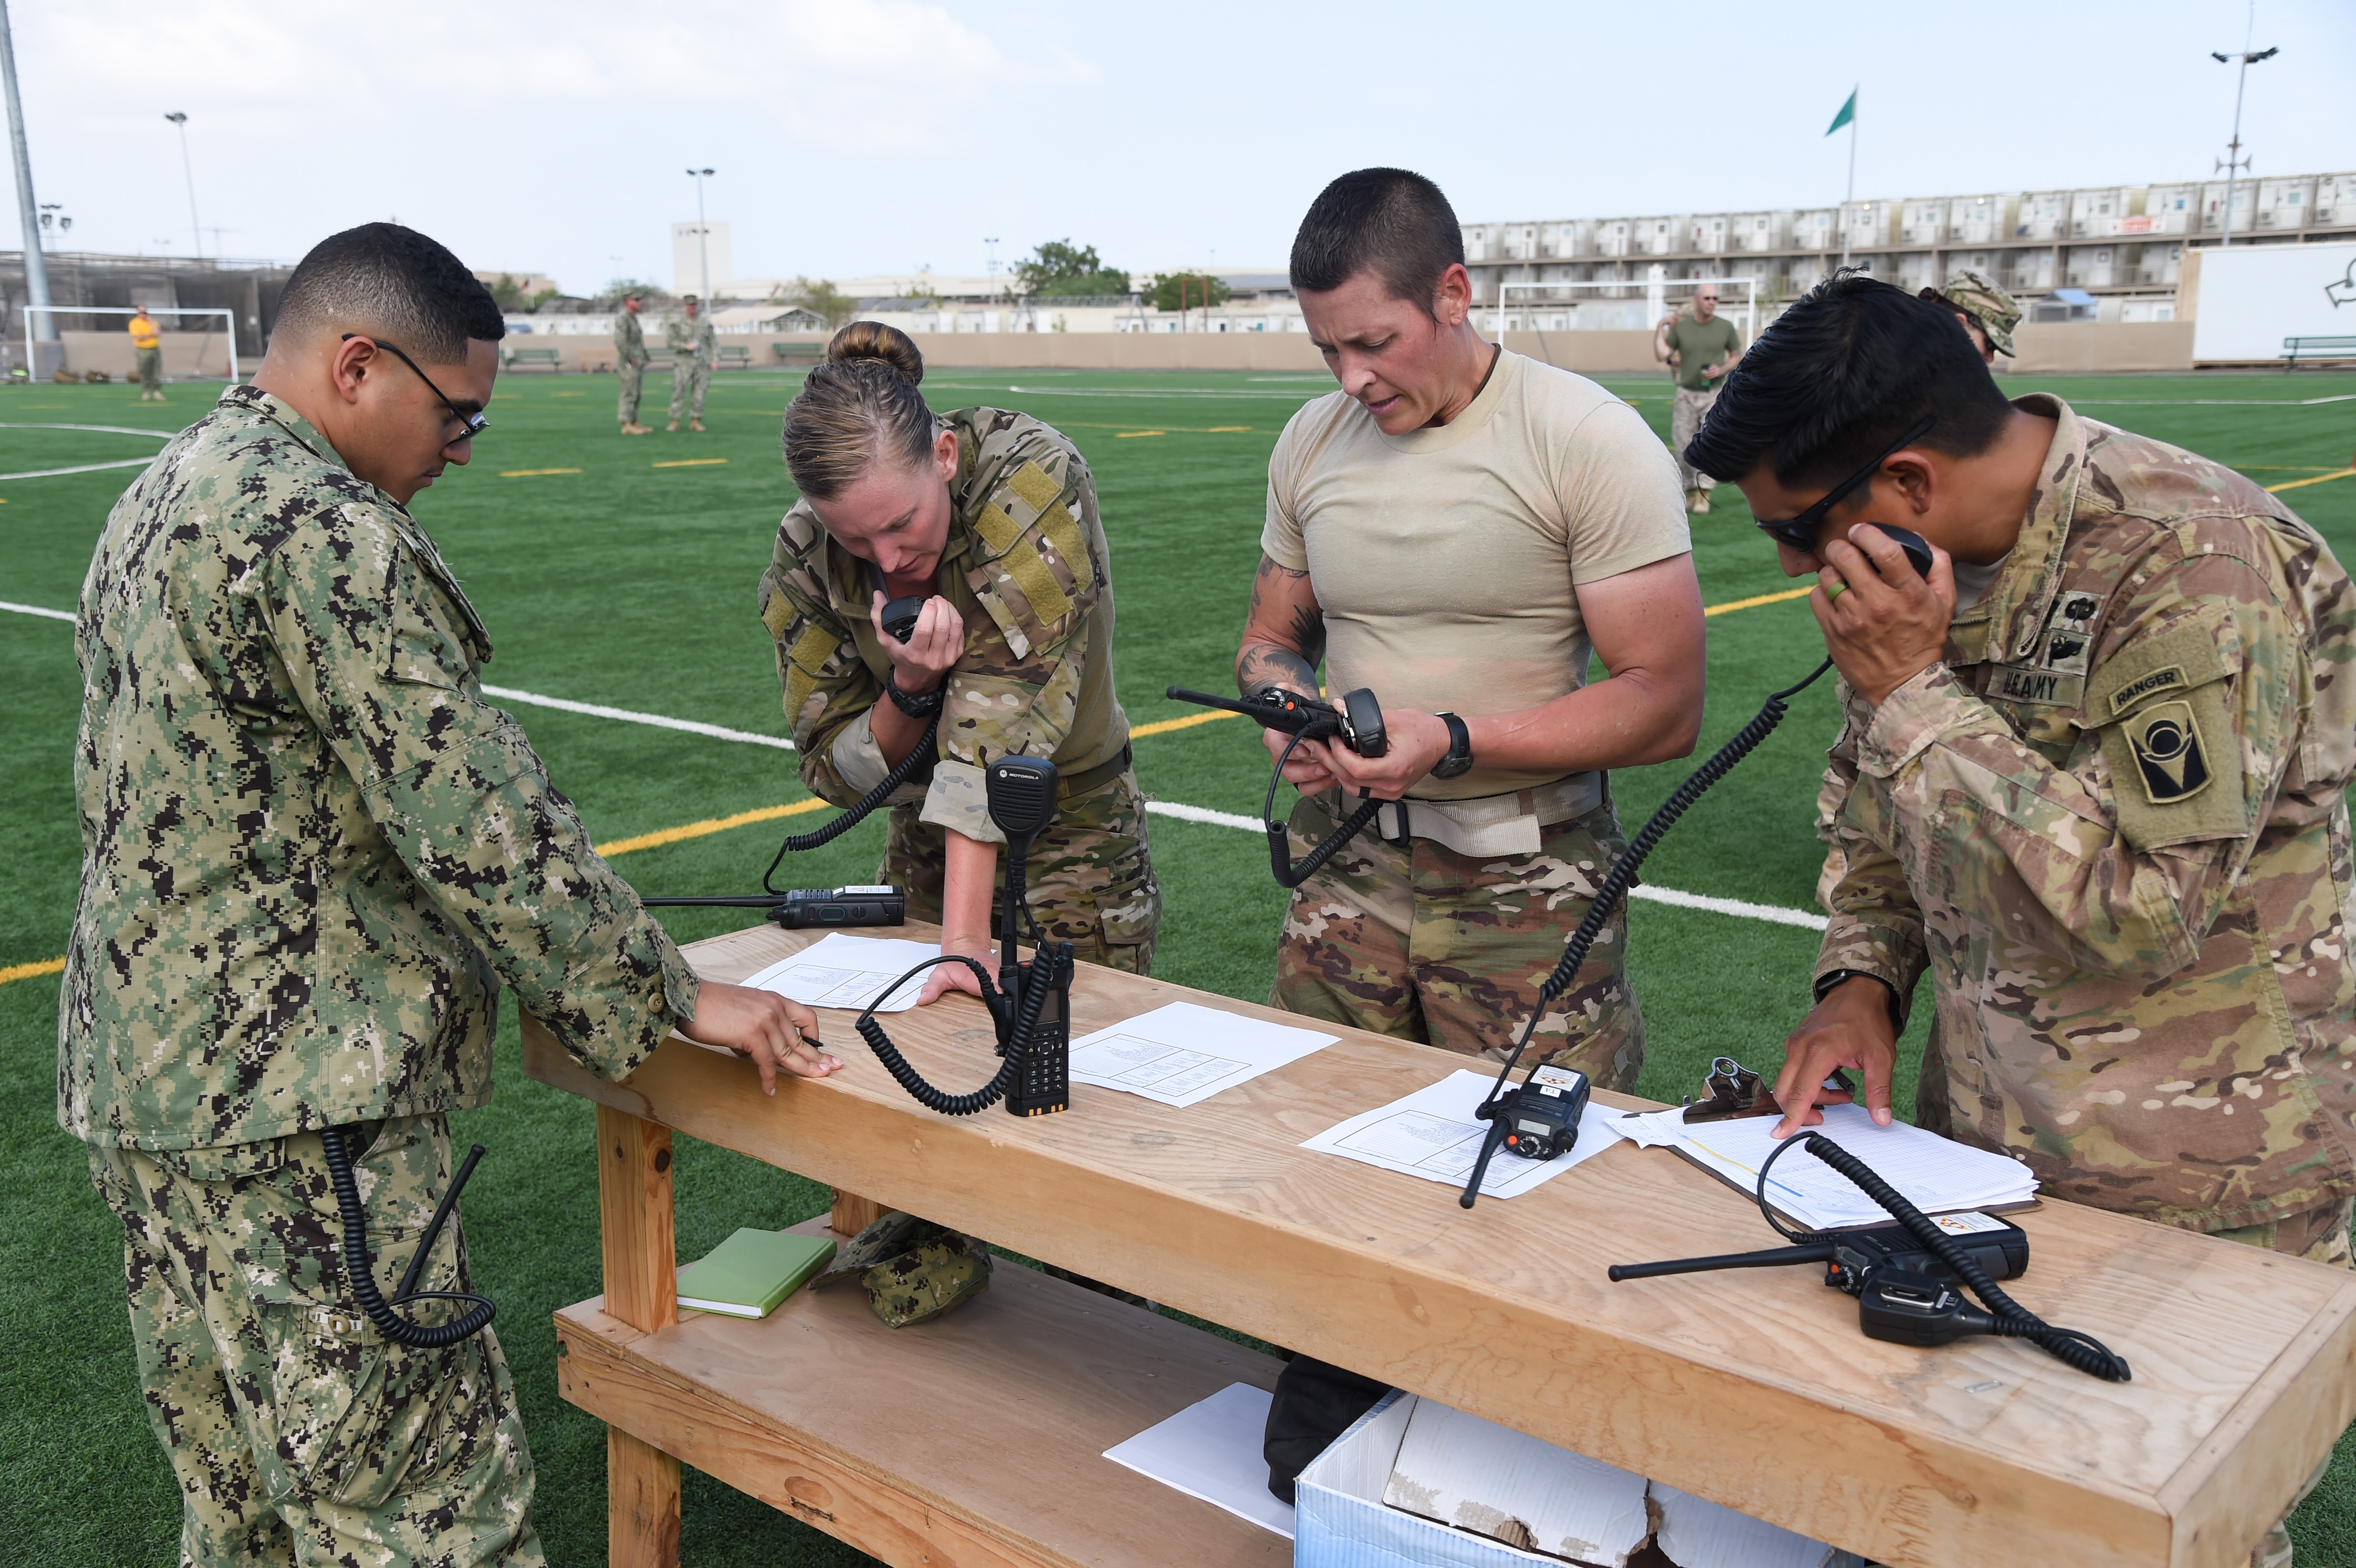 U.S. service members assigned to Combined Joint Task Force-Horn of Africa and Camp Lemonnier call in to arrange a simulated medical evacuation after a buddy carry during the Joint Warrior Competition, Nov. 19, 2016, Camp Lemonnier, Djibouti. After the joint physical fitness test, participants started the joint combat fitness test. The combat test was comprised of a low crawl, tourniquet application, buddy carry, radio medical evacuation, grenade toss, tire flip, ammo can carry, dead lift, and rope climb. (U.S. Air National Guard photo by Staff Sgt. Penny Snoozy)